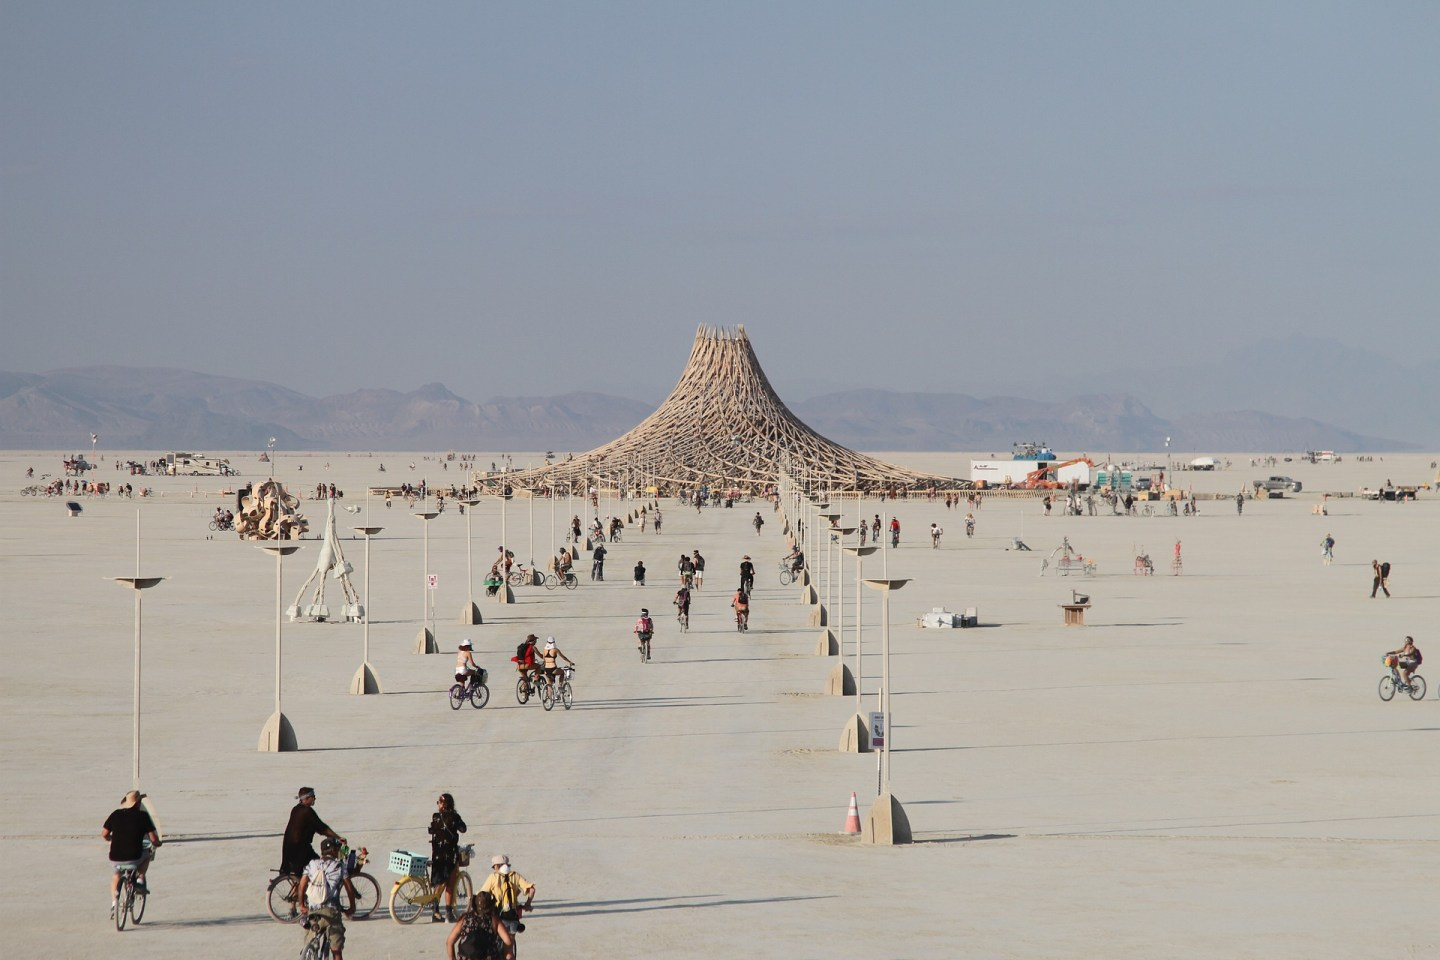 Black Rock City - Burning Man